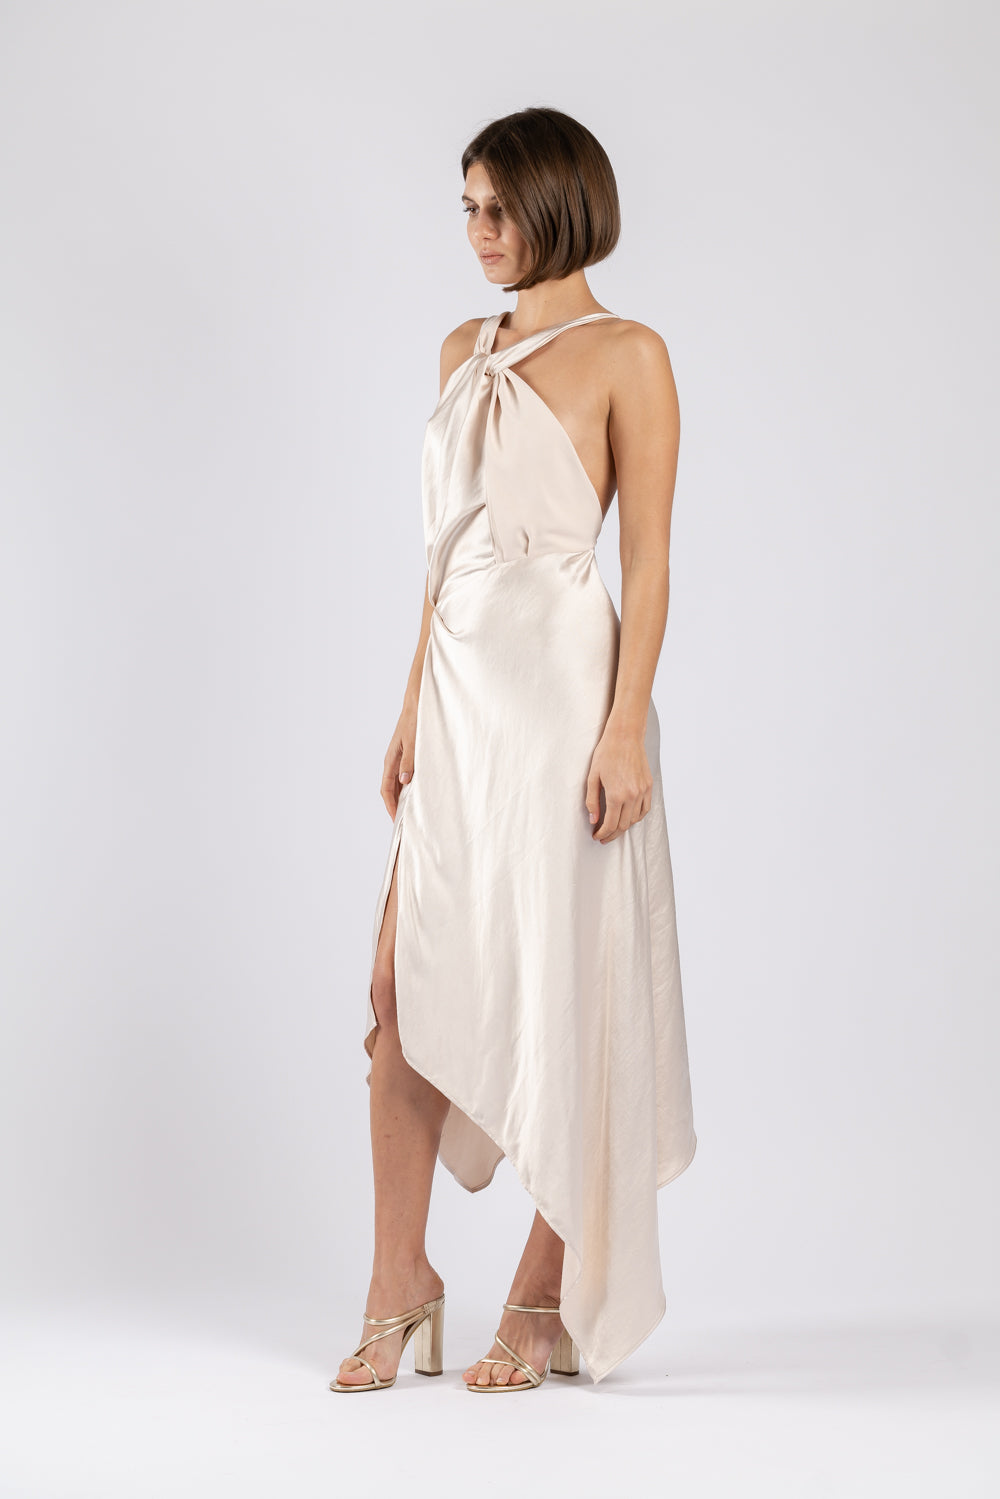 AUDREY DRESS IN MOTHER OF PEARL